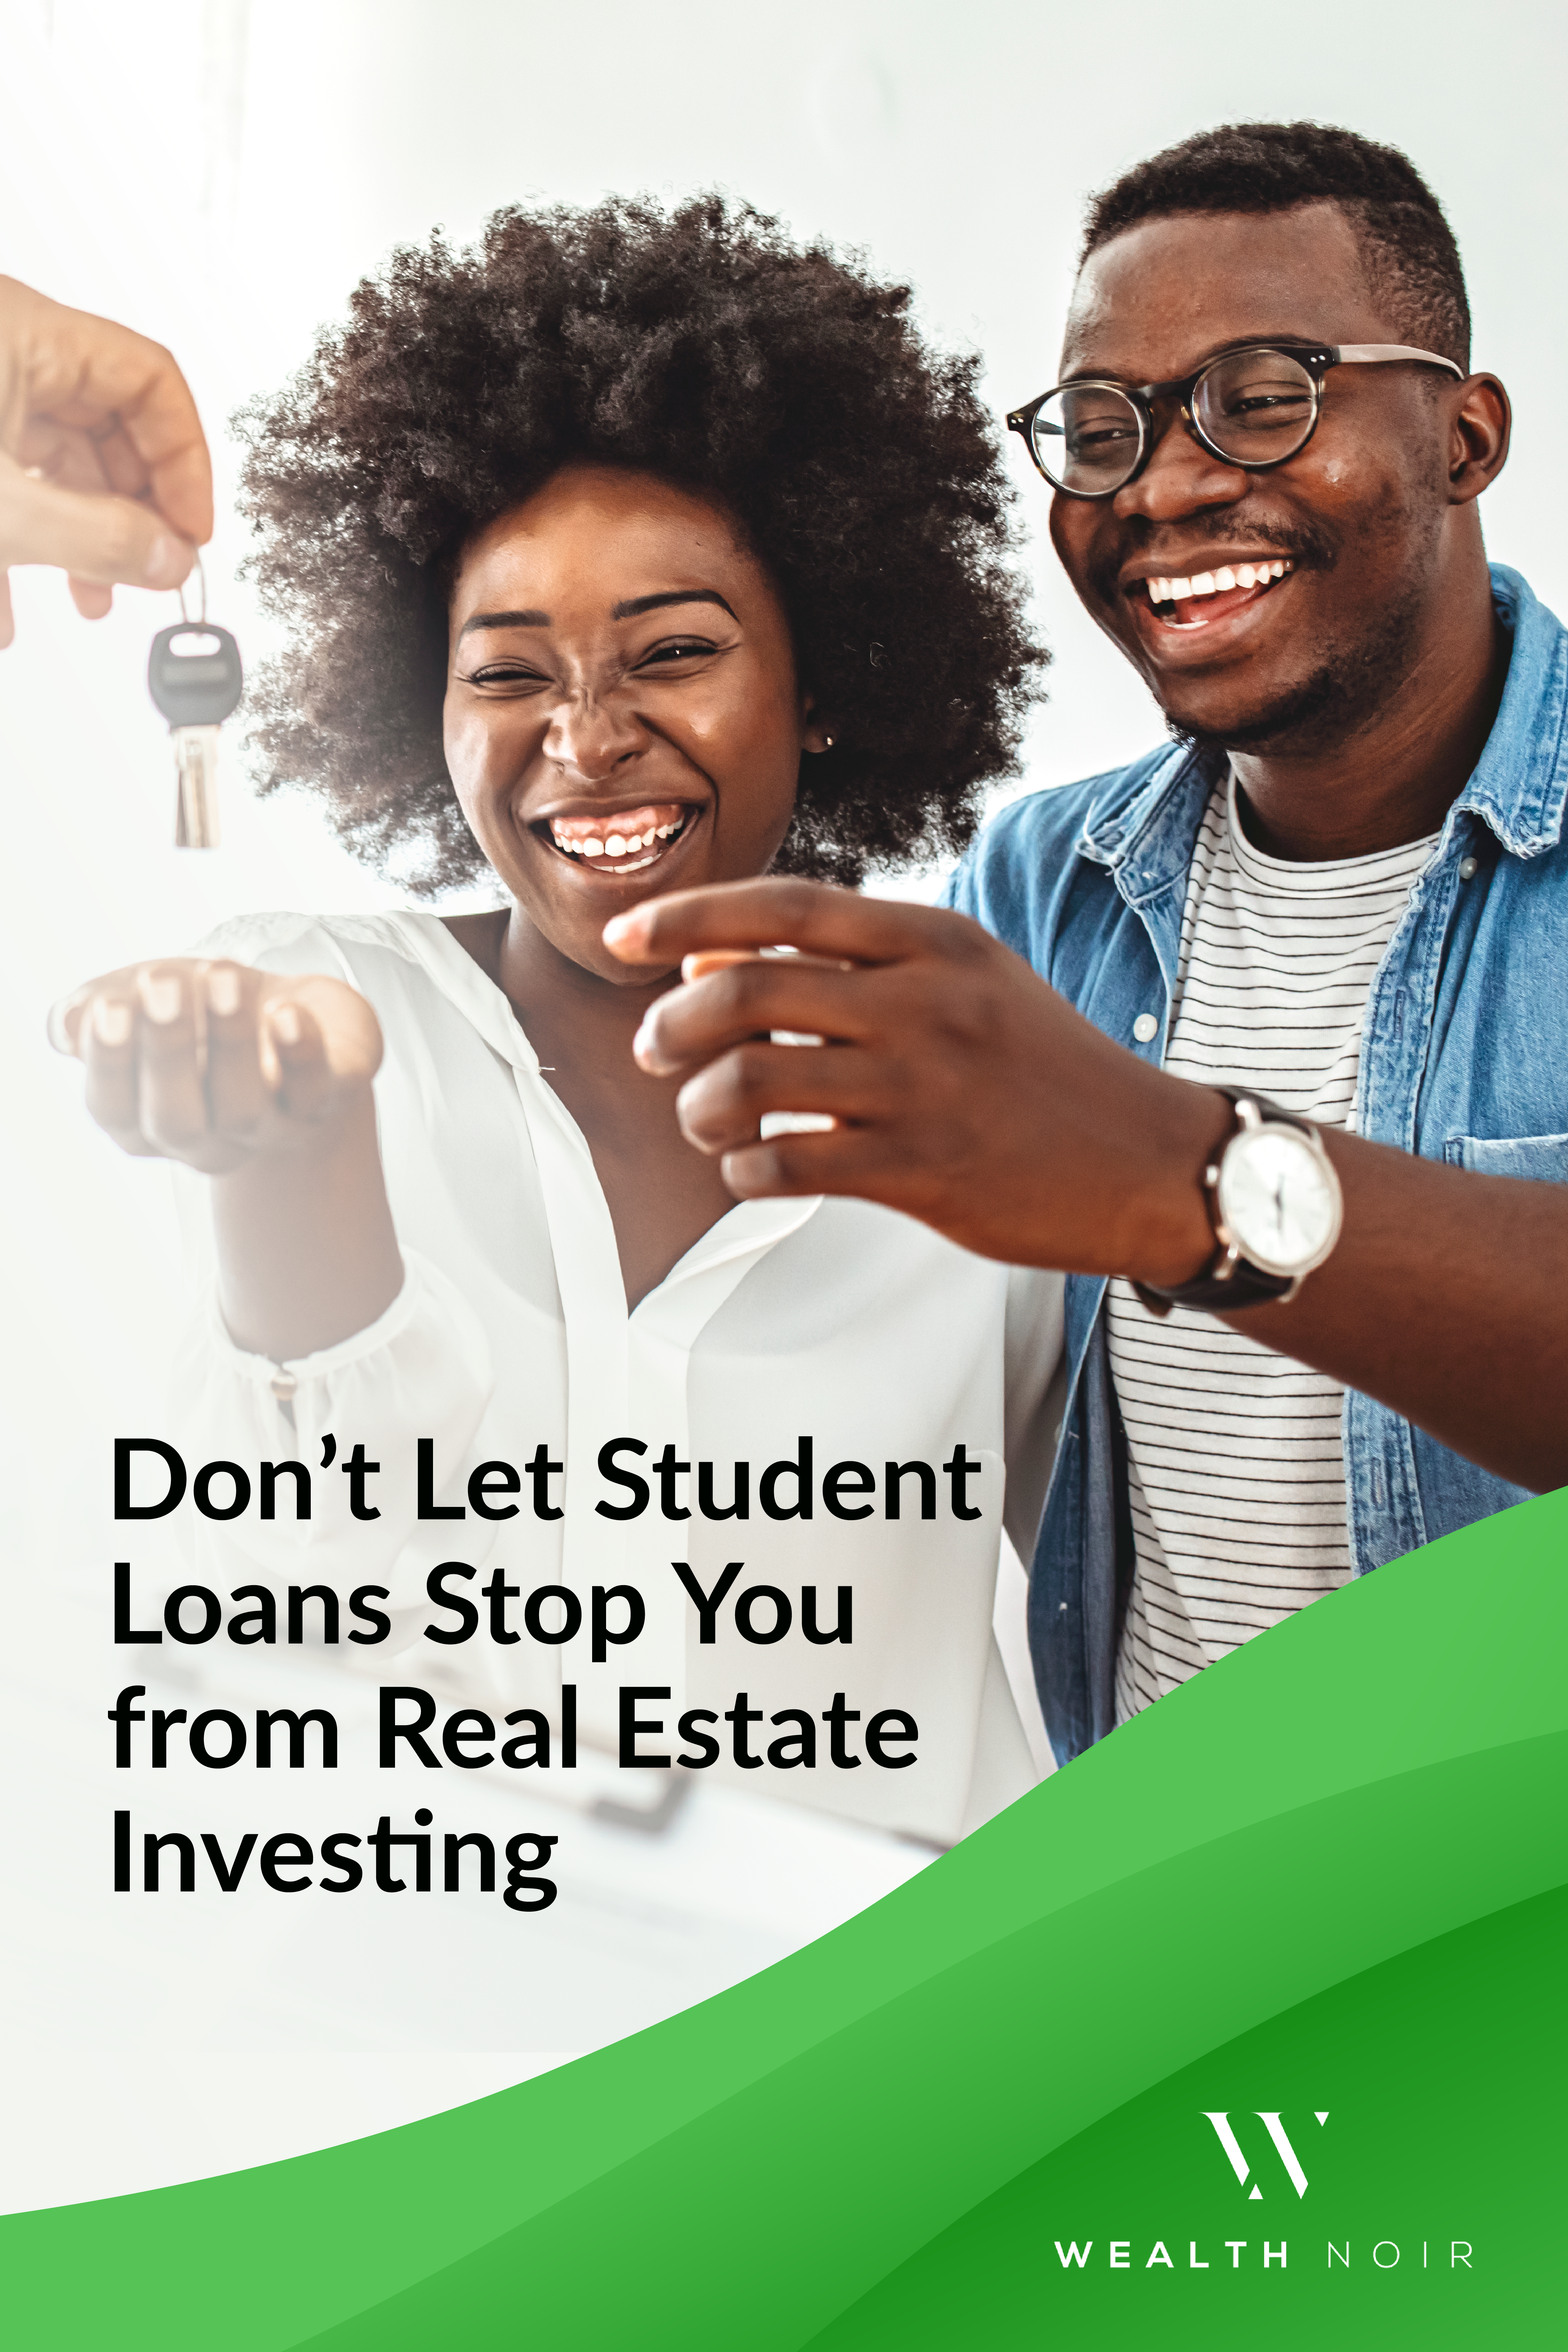 Don't Let Student Loans Stop You From Real Estate Investing